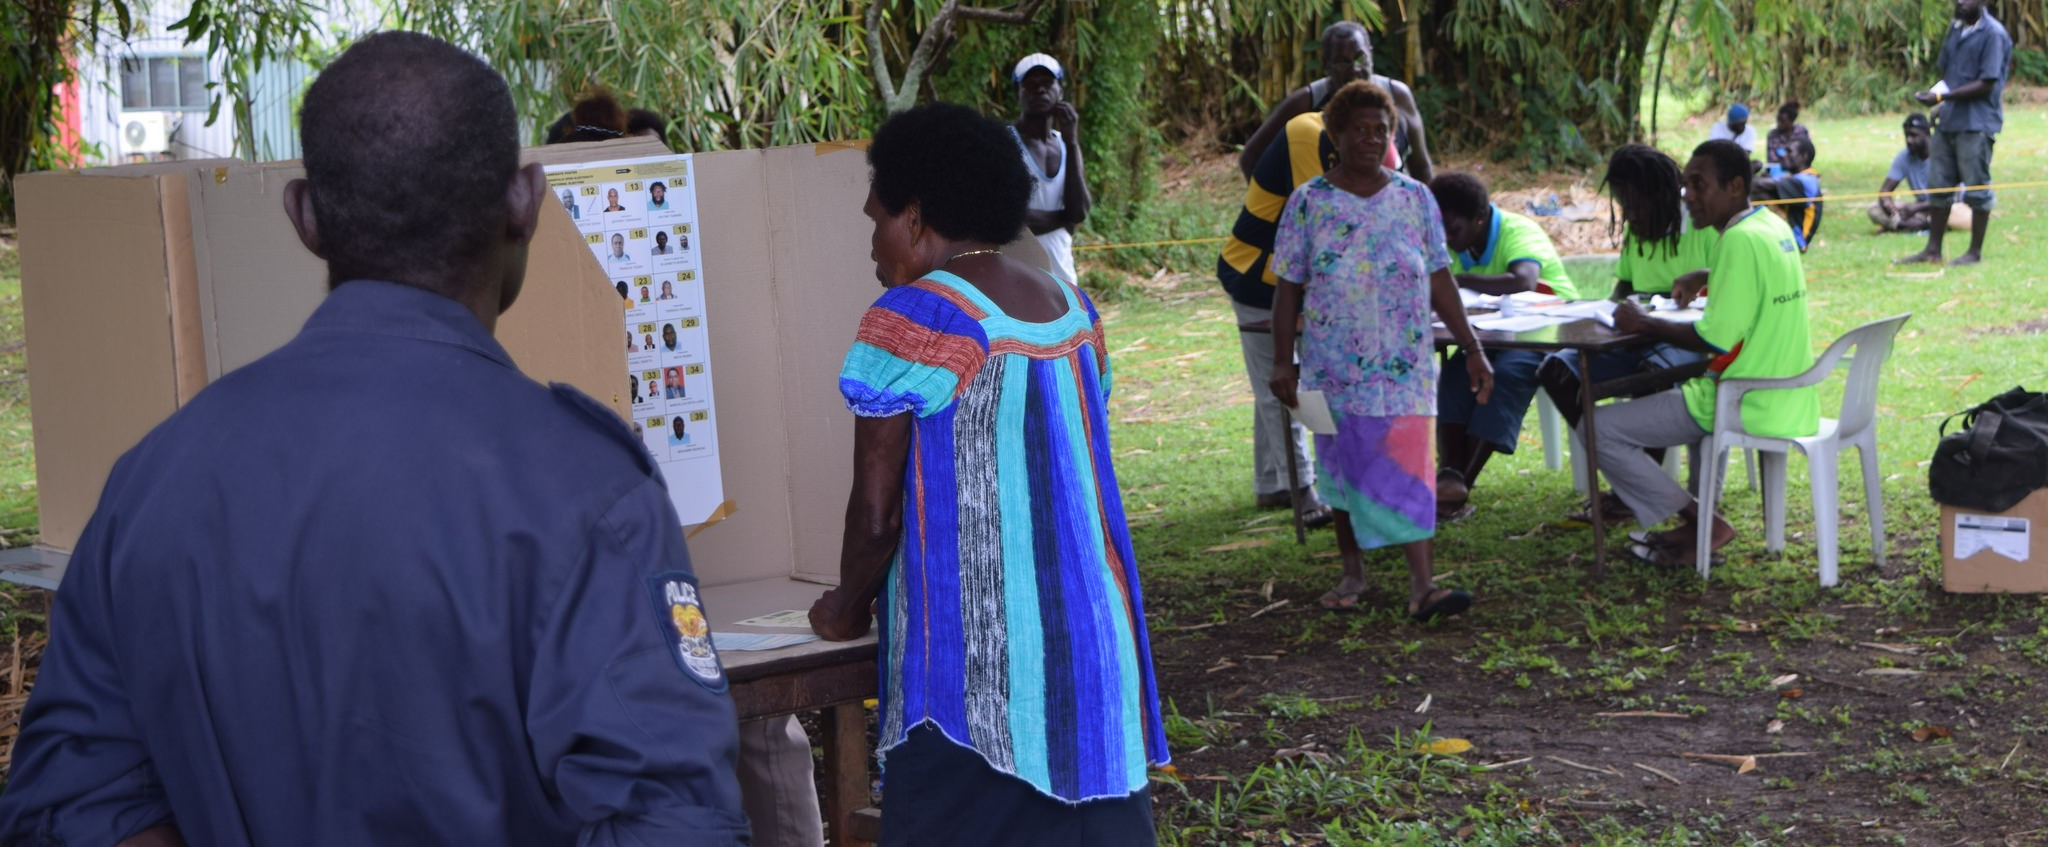 A woman votes in Bougainville, Papua New Guinea, June 2017 (Photo:Flickr/Commonwealth Secretariat)